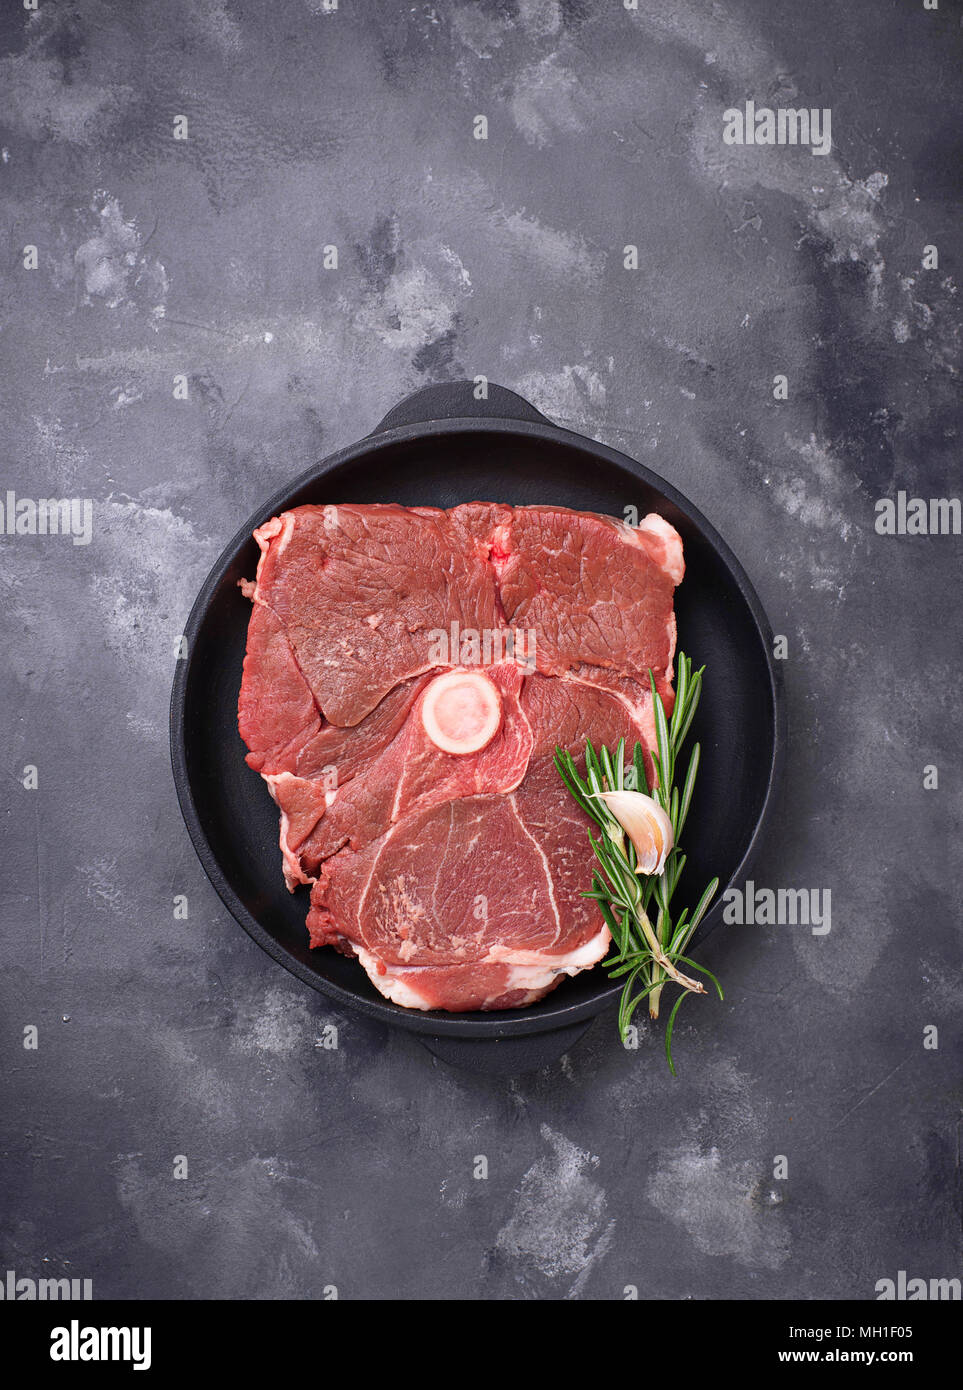 Lamb meat with rosemary and spices - Stock Image